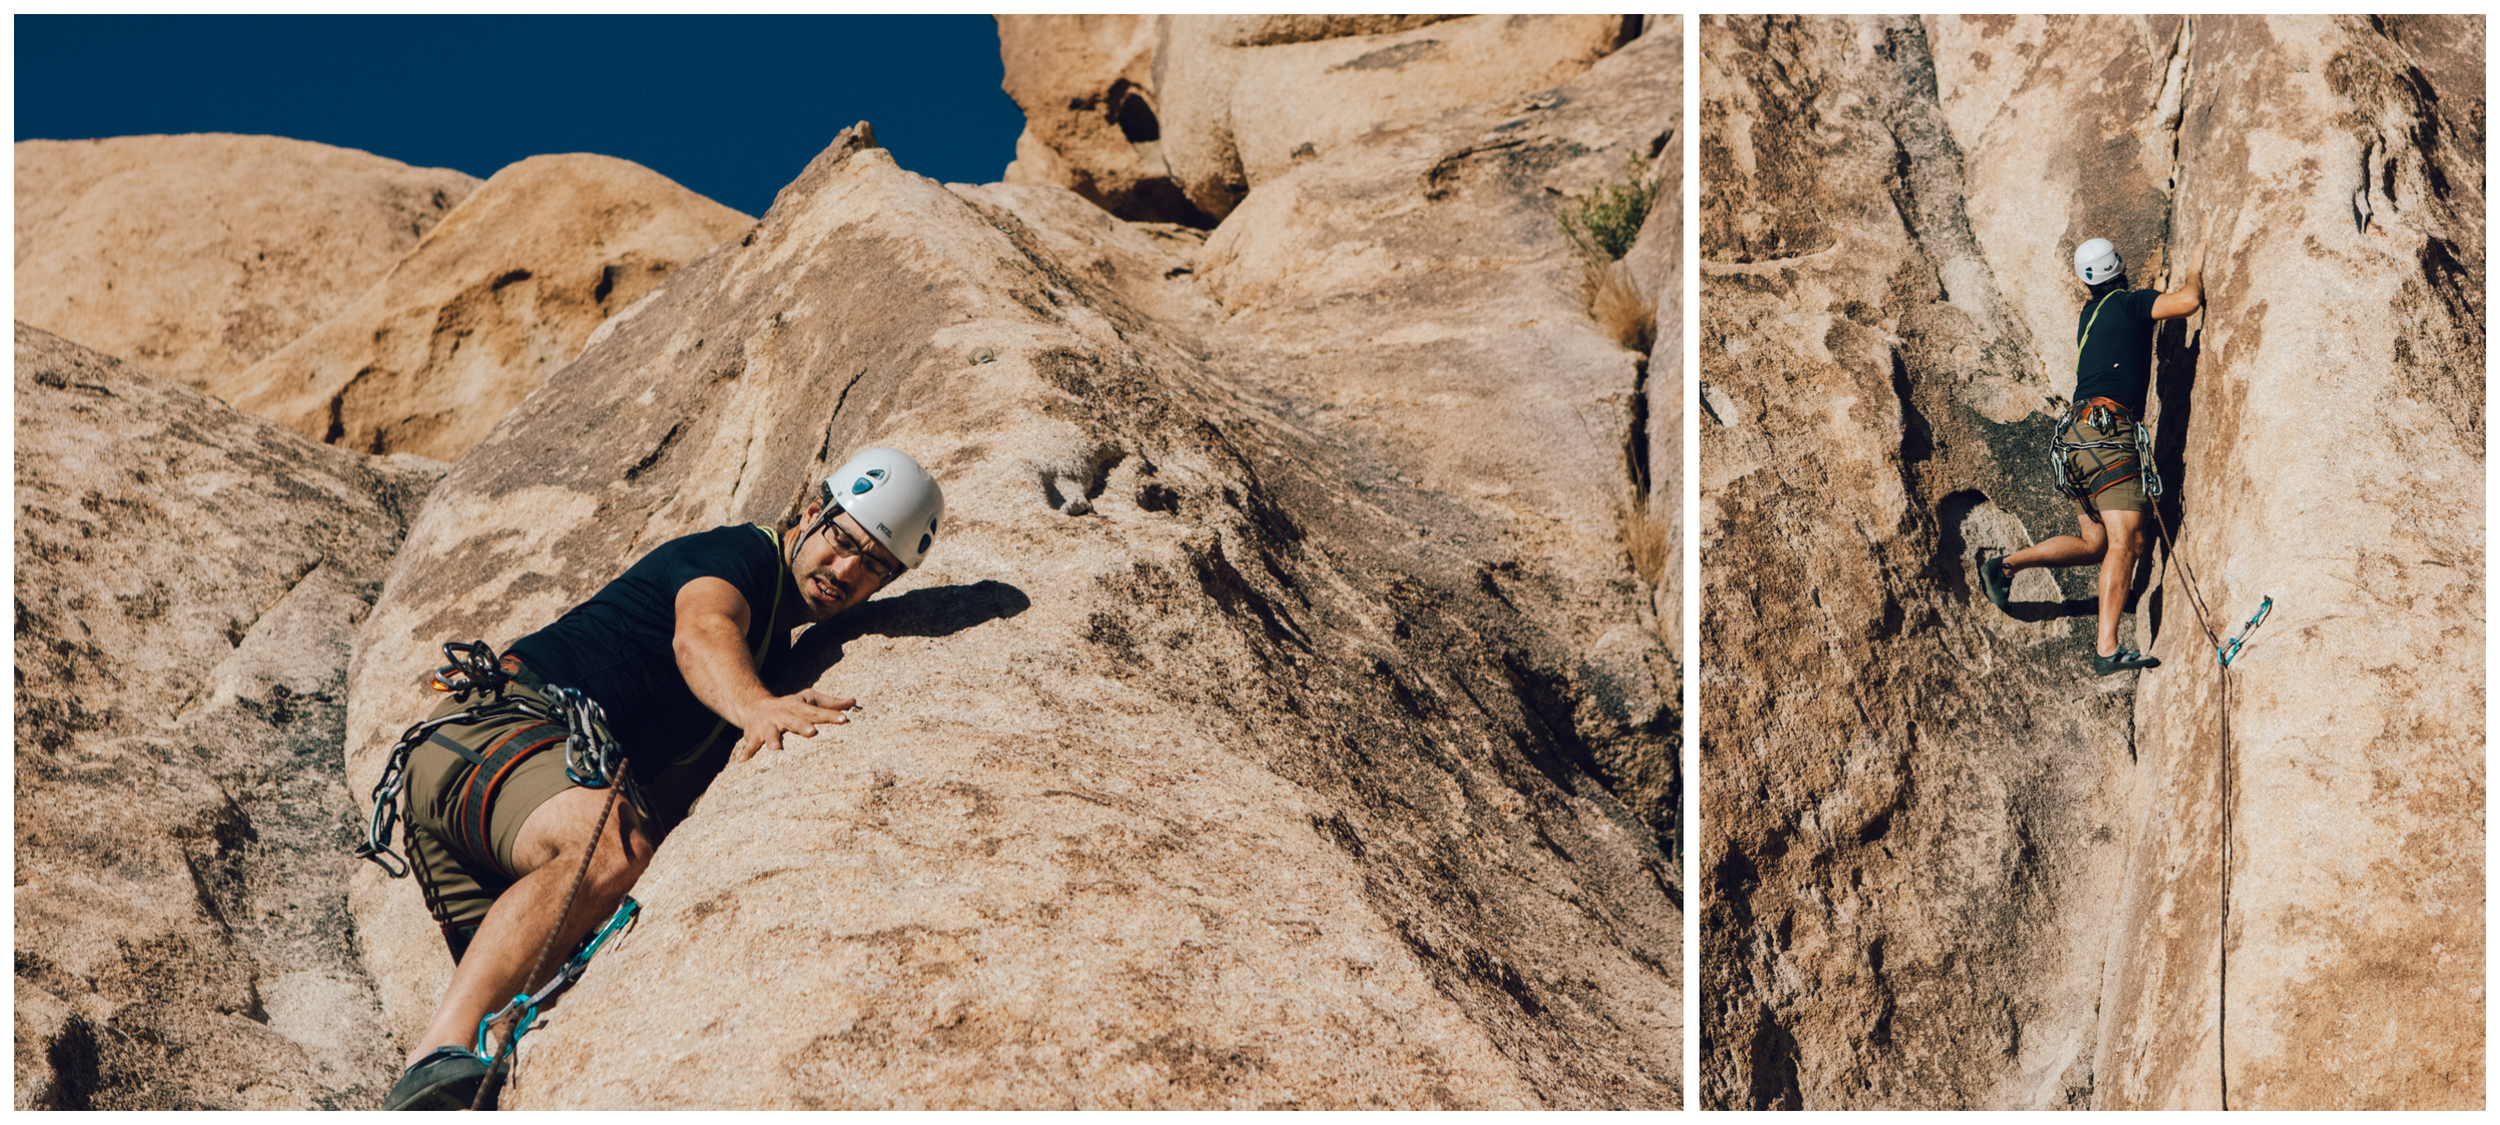 JF is right where Jennifer was when she fell. It was about a a 5 feet fall and her ankle twisted when she landed in the crack (photos by Isabelle Lauzon).